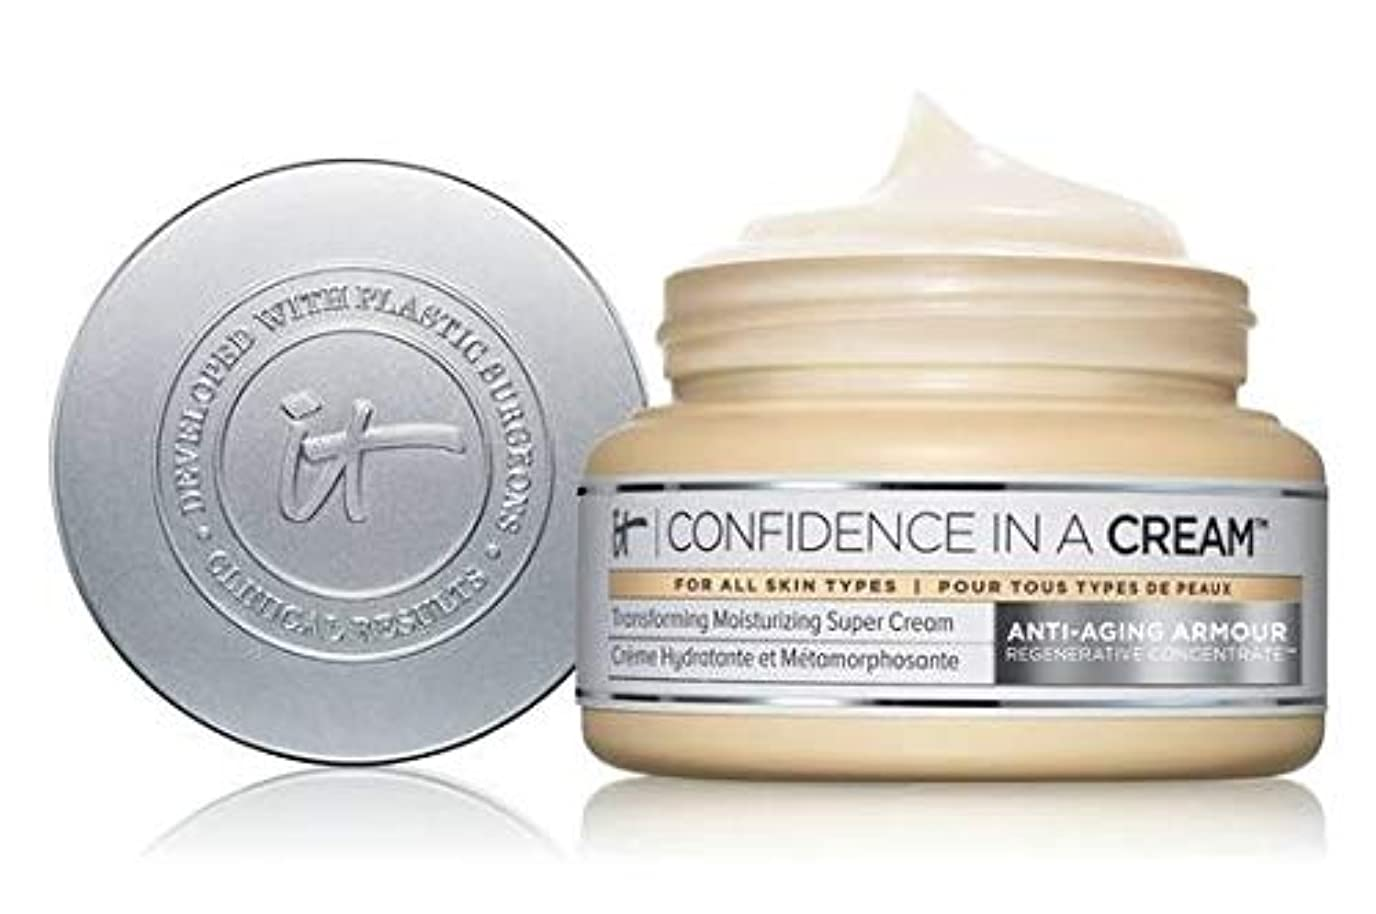 It Cosmetics Confidence in a Cream Moisturizer 2 Ouncesクリームモイスチャライザー